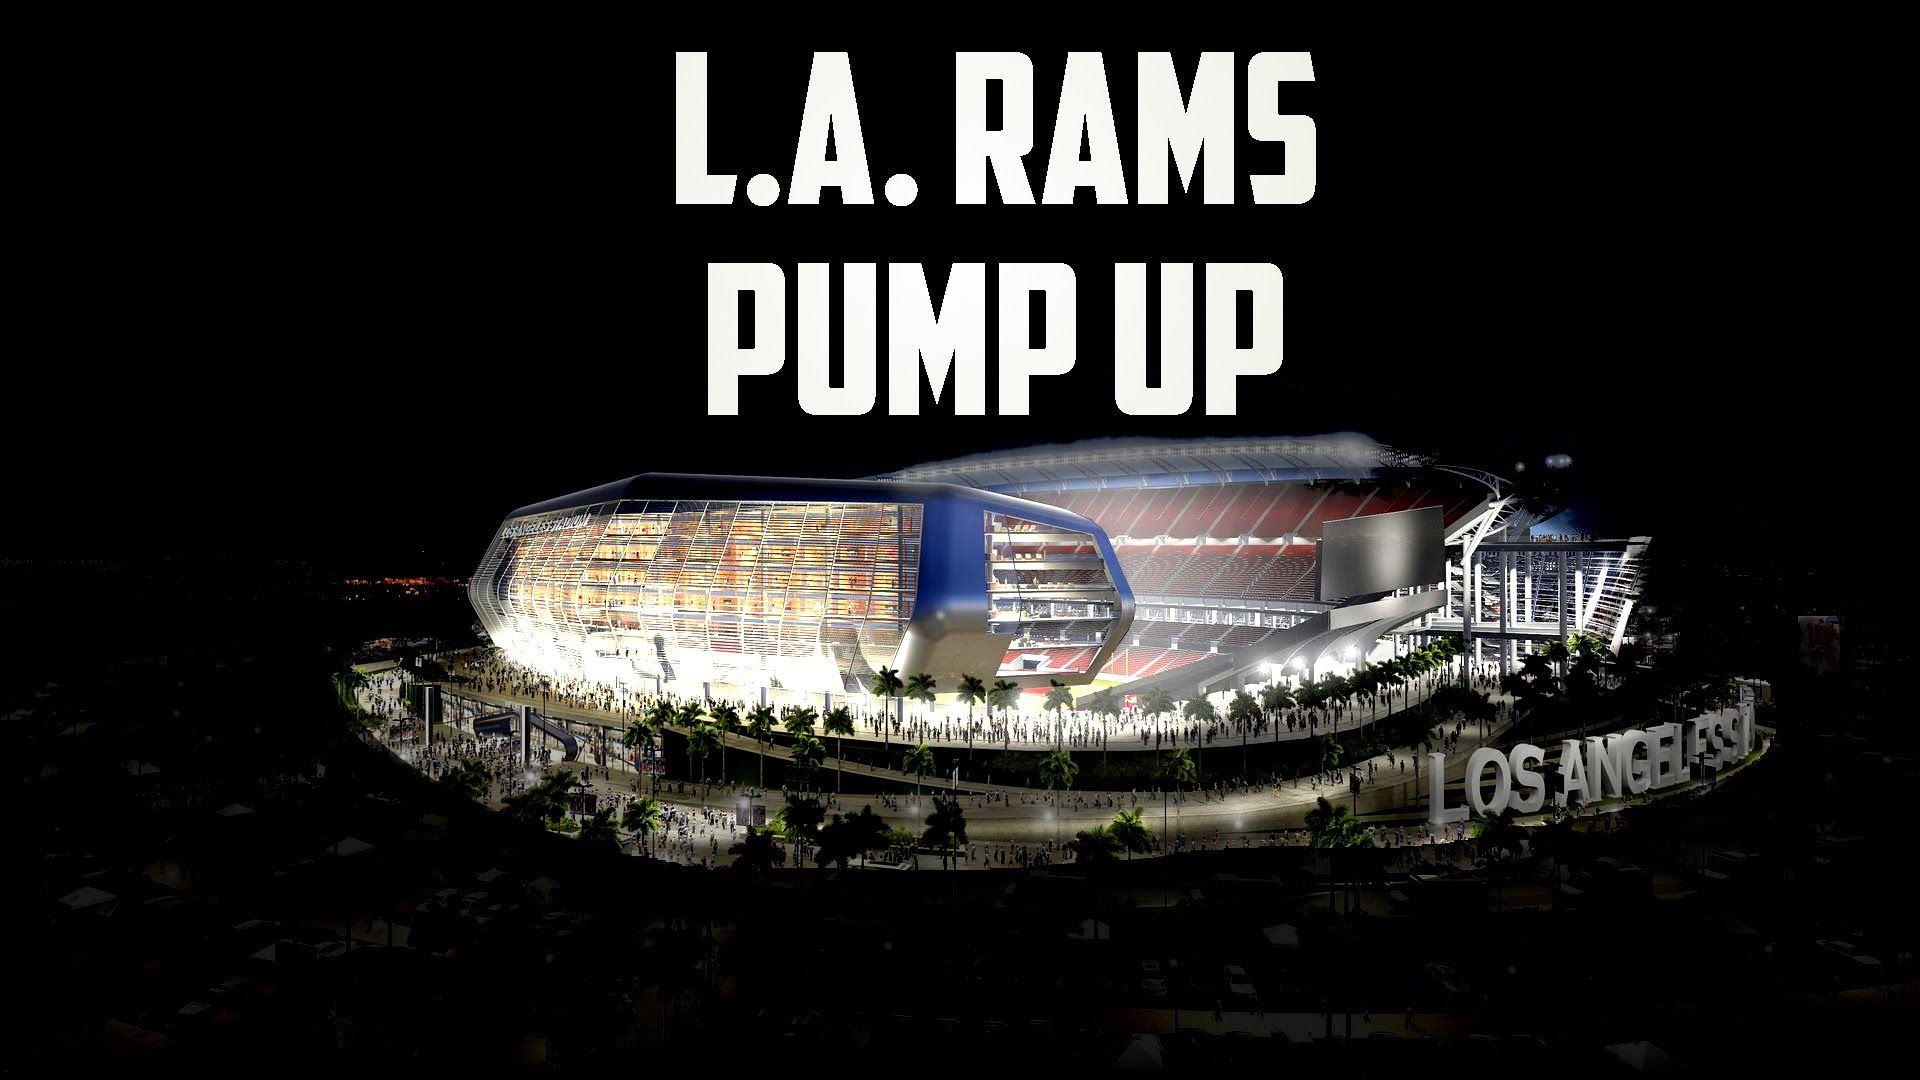 Los Angeles Rams Pump Up!